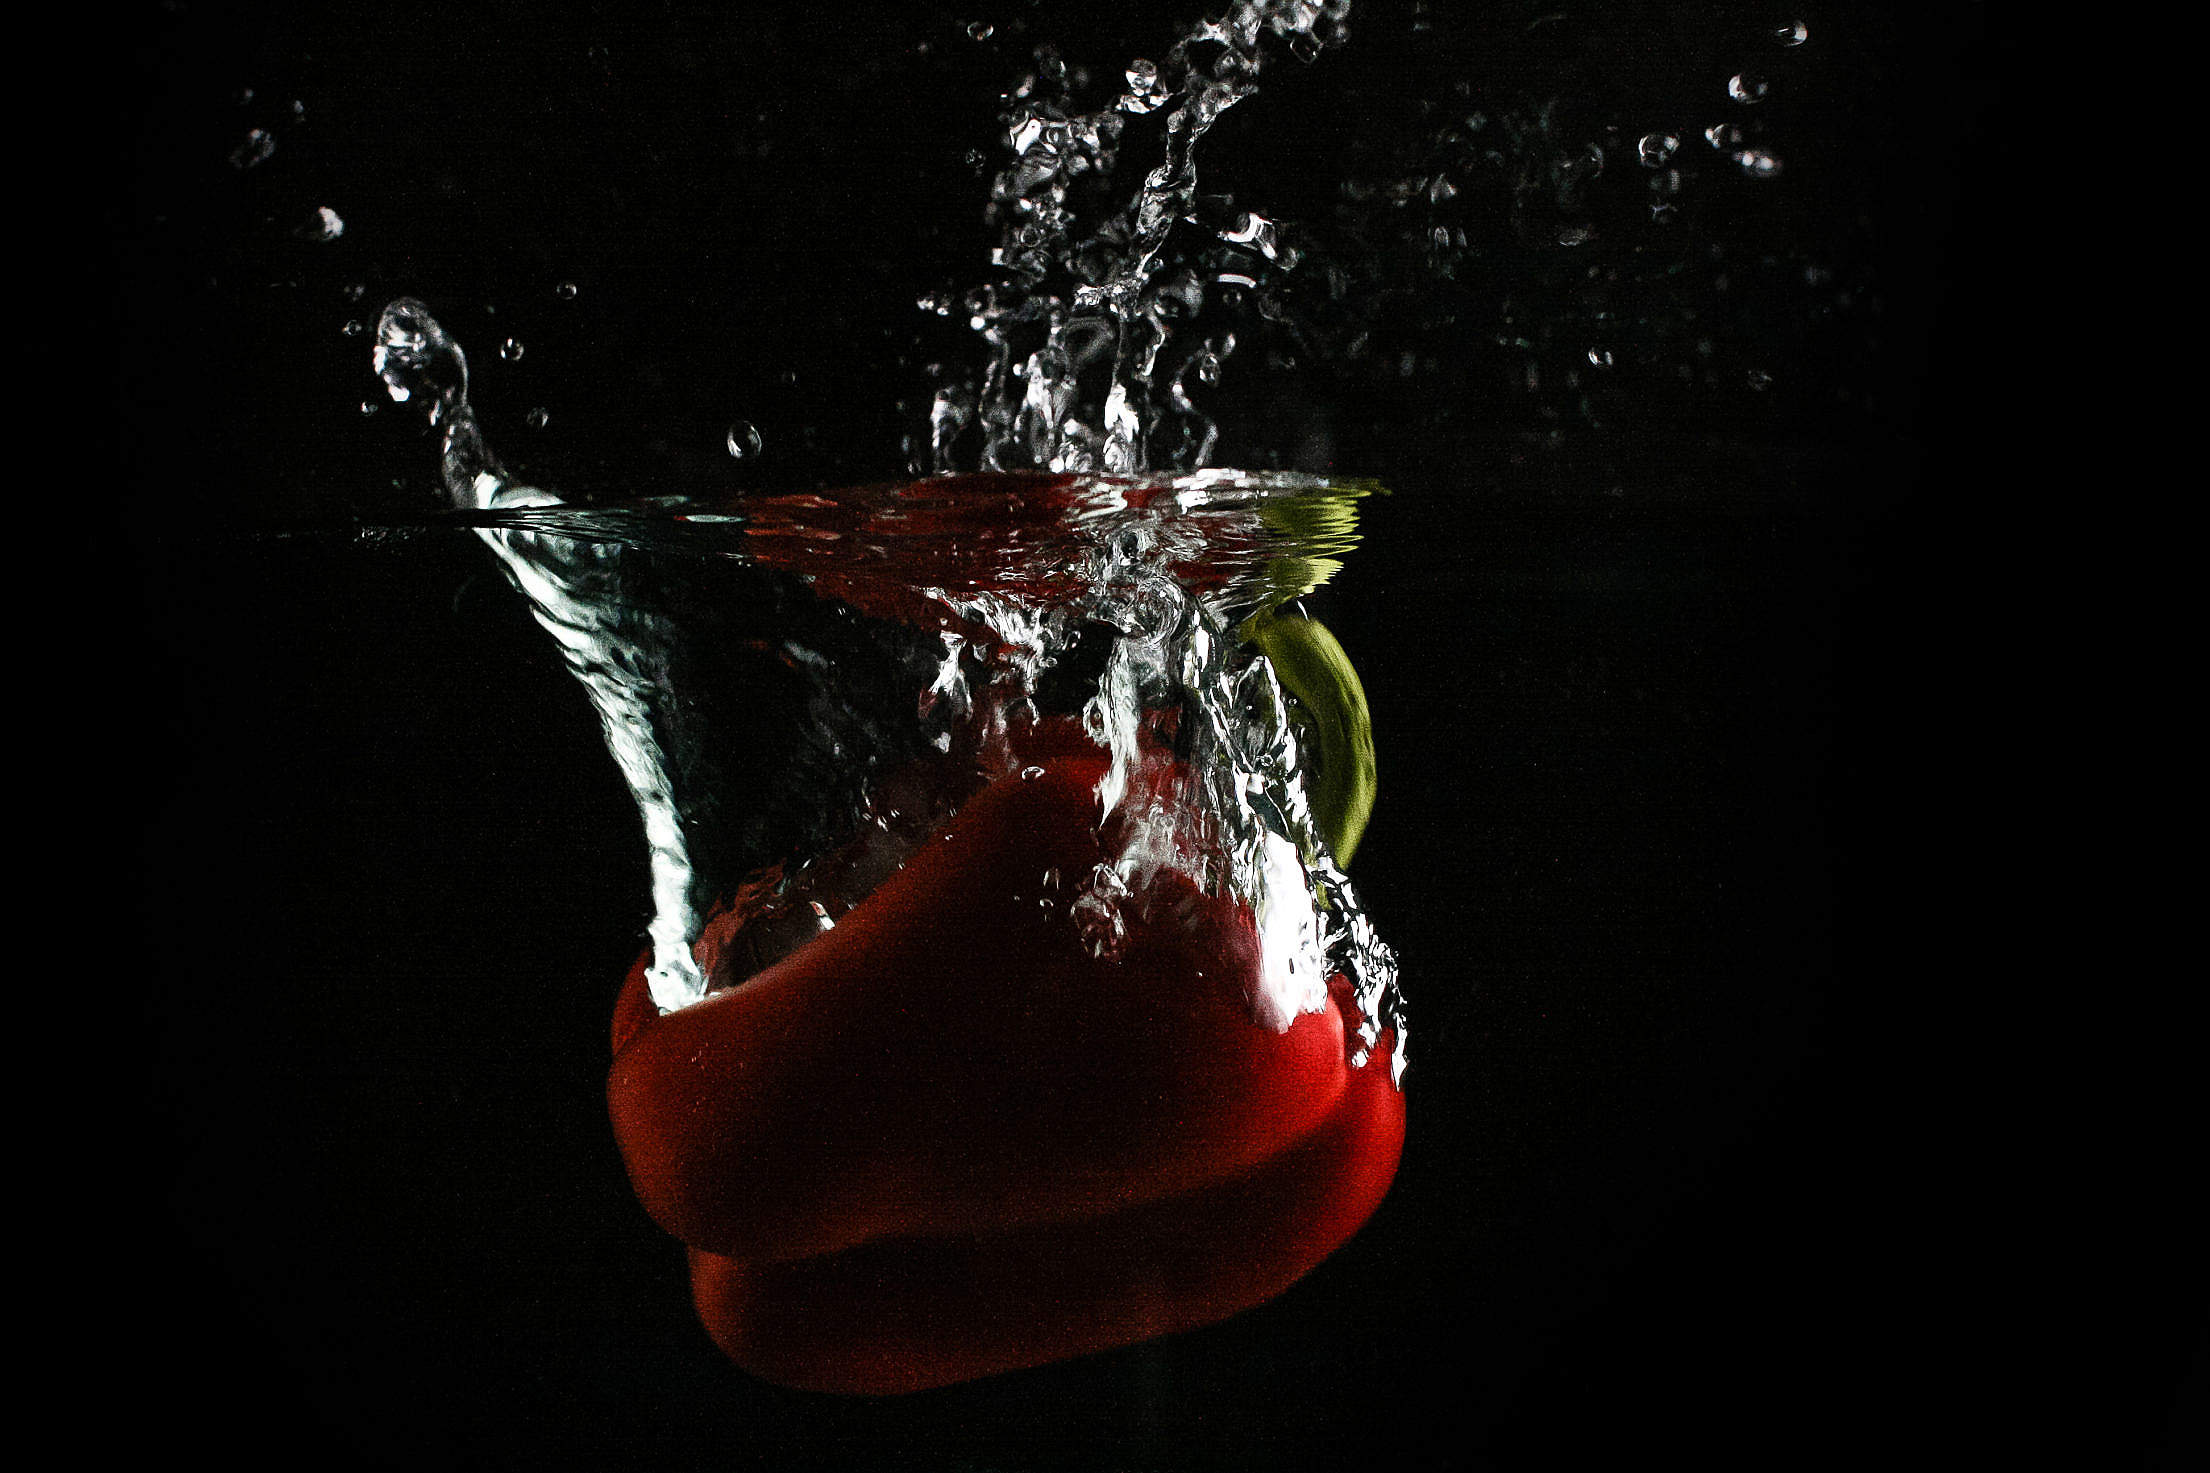 Red Paprika in Water Free Stock Photo